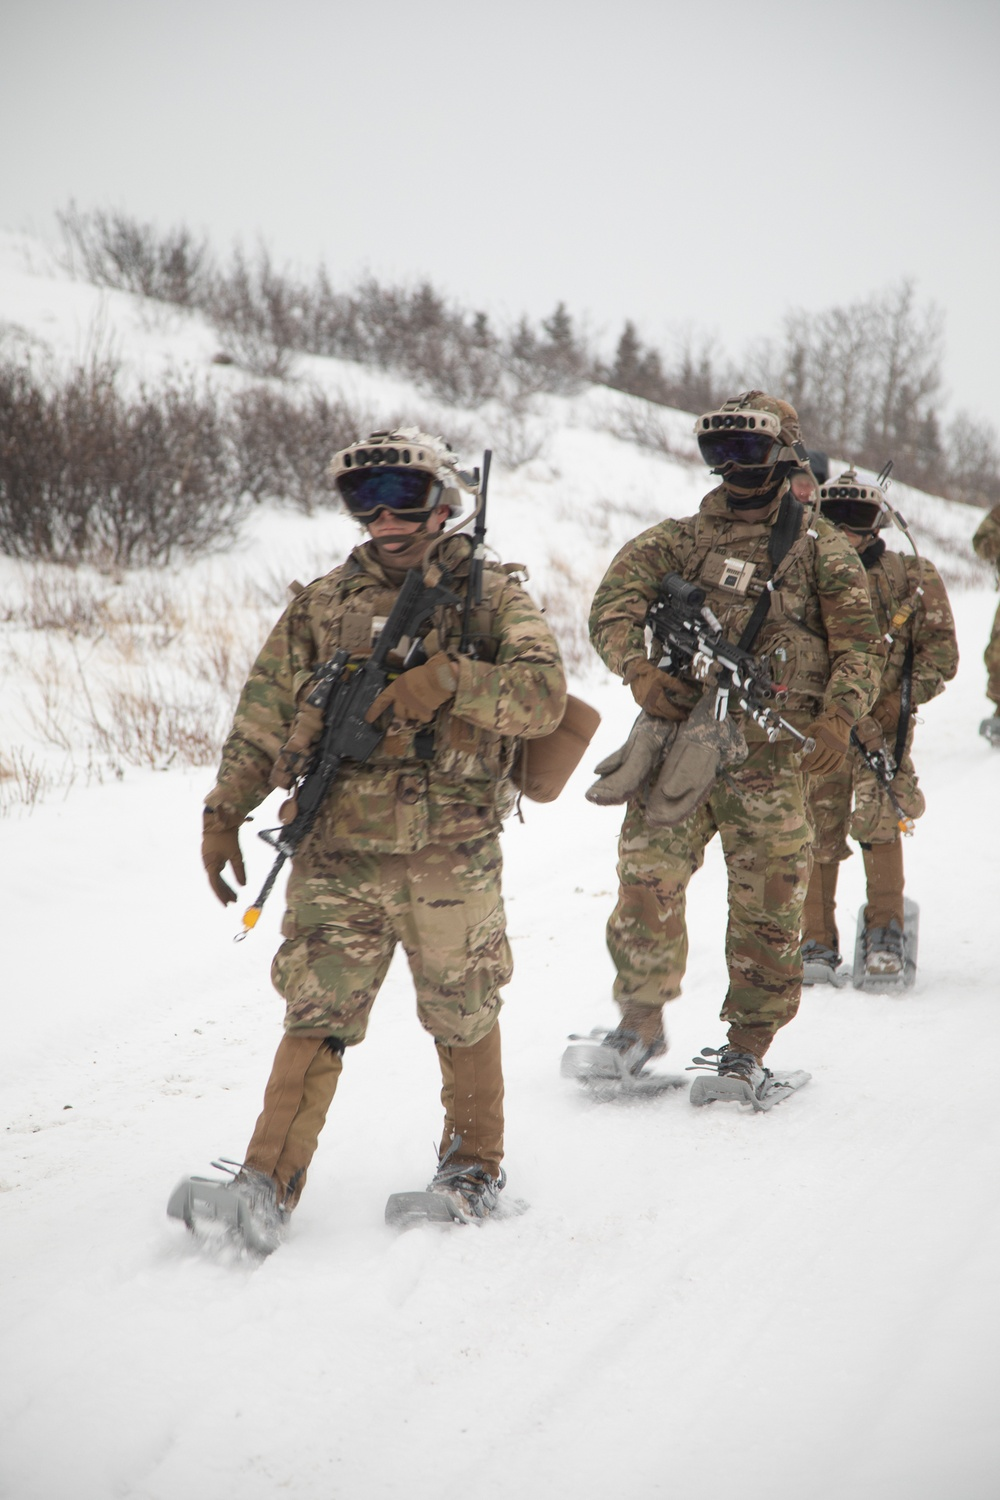 IVAS system undergoes extreme cold-weather testing at U.S. Army Cold Regions Test Center